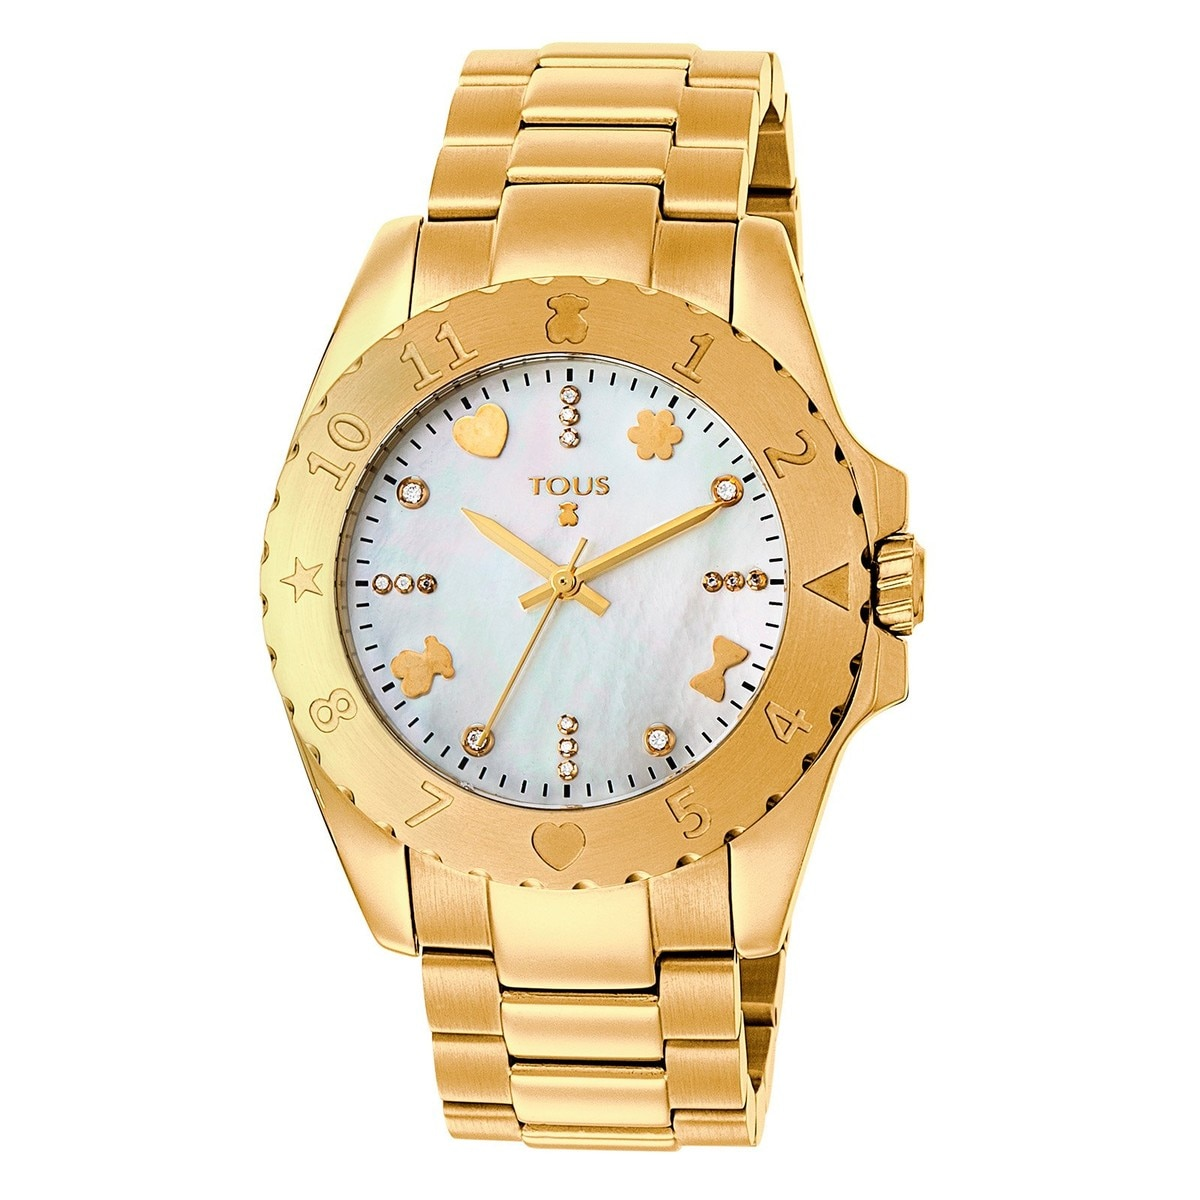 Gold IP Steel Motif Watch with Diamonds